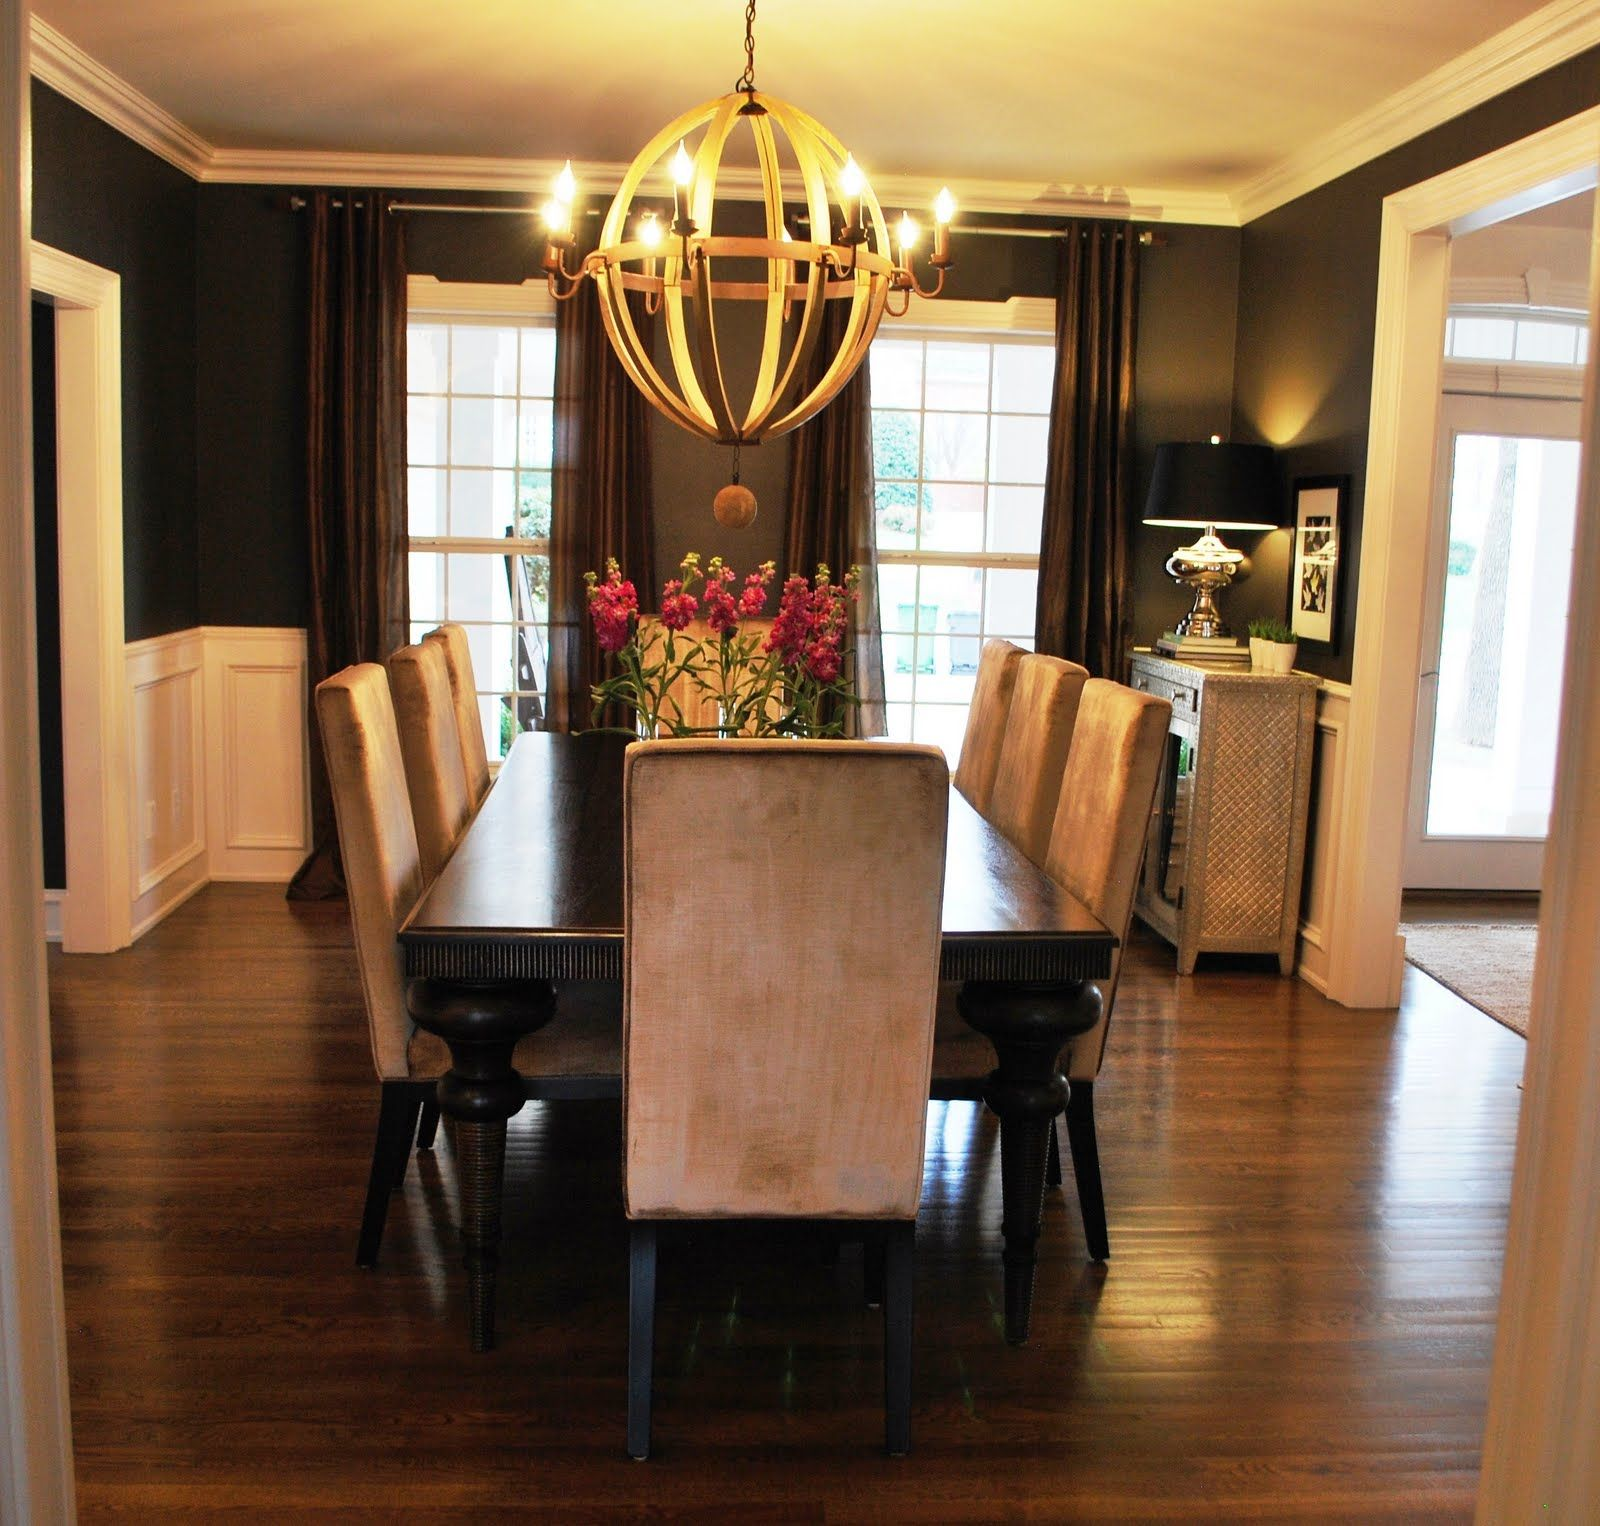 Green and White Wall Color for Dining Room Decorating with ...